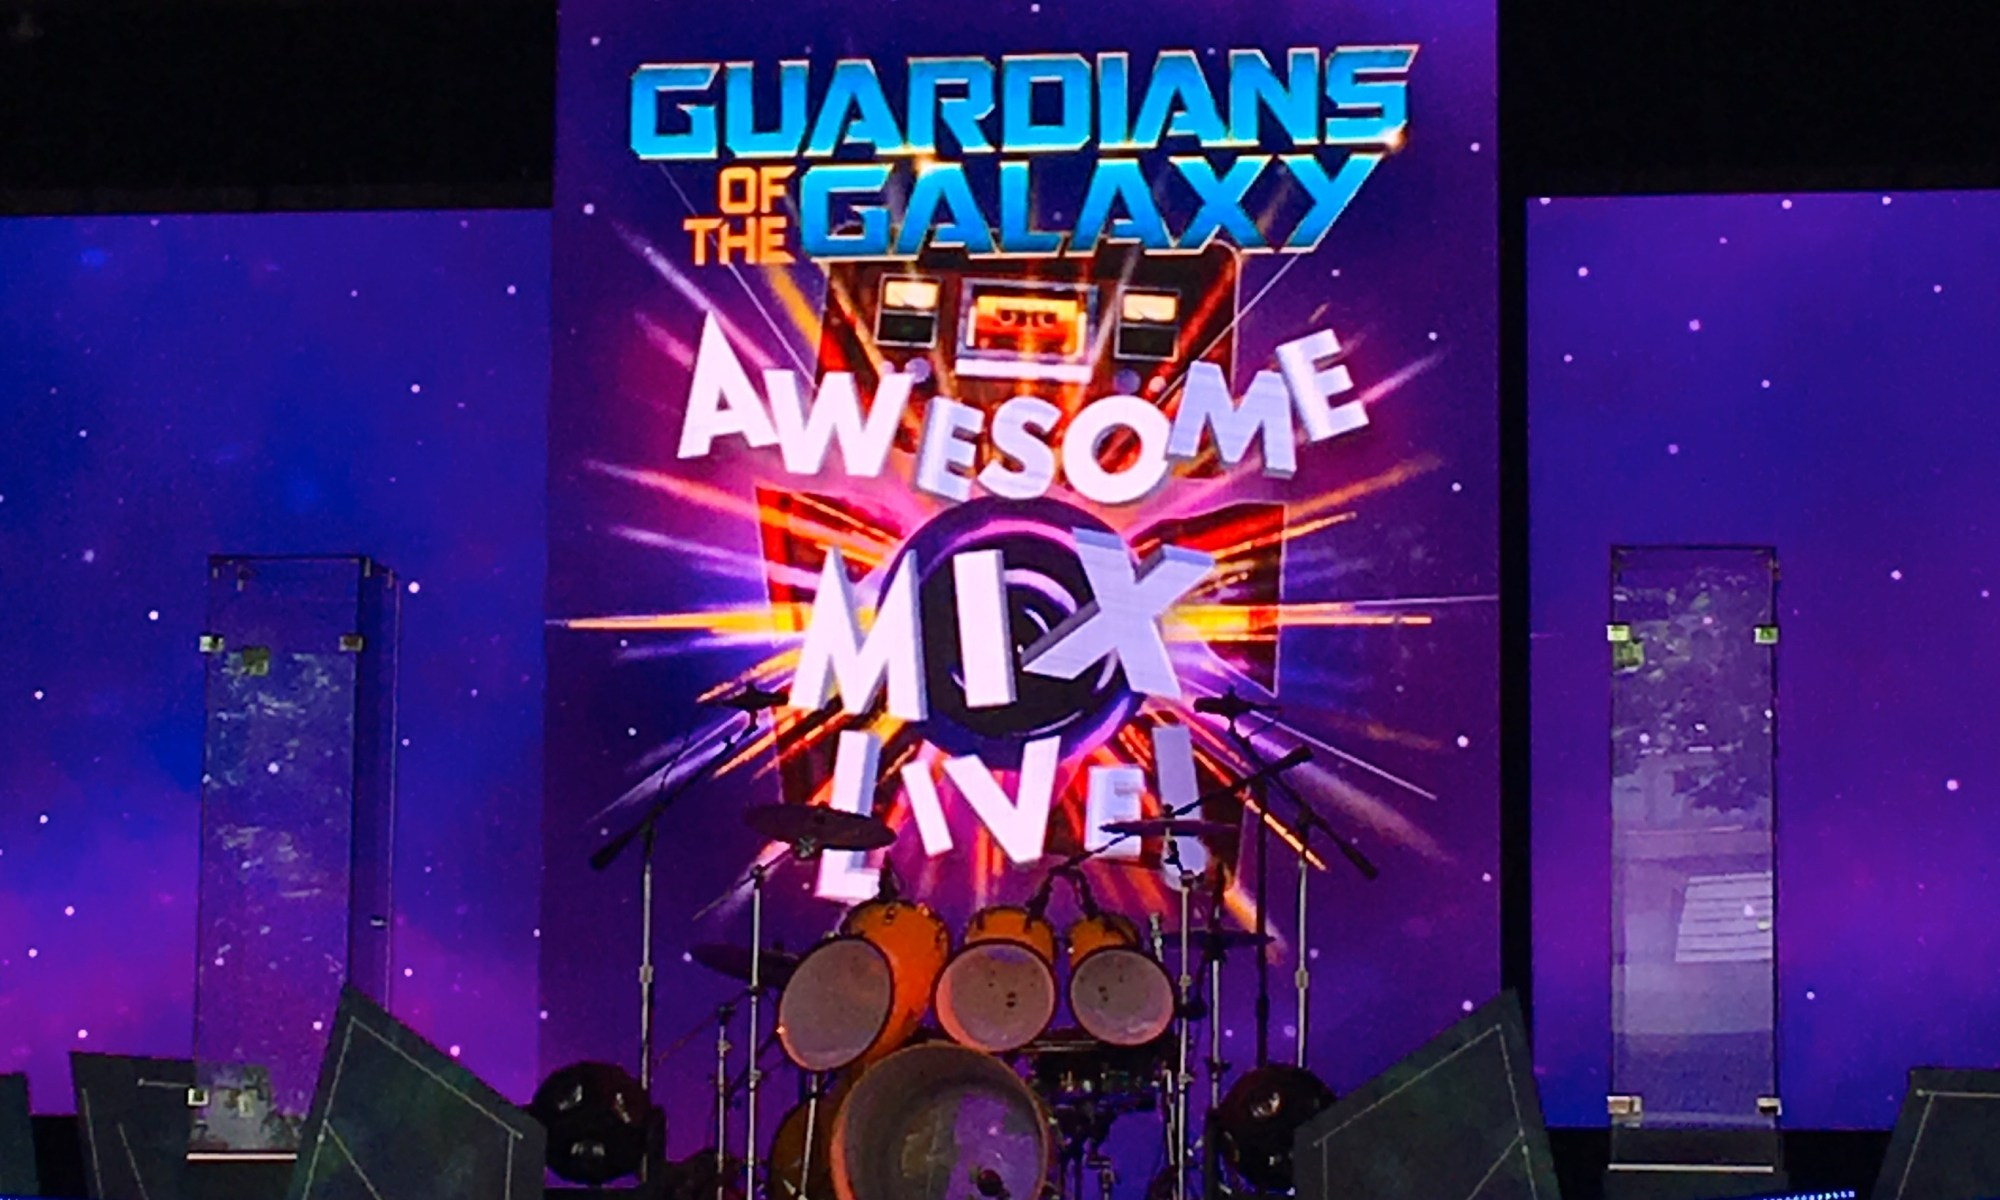 Epcot, Guardians of the Galaxy, Awesome Mix Live Show